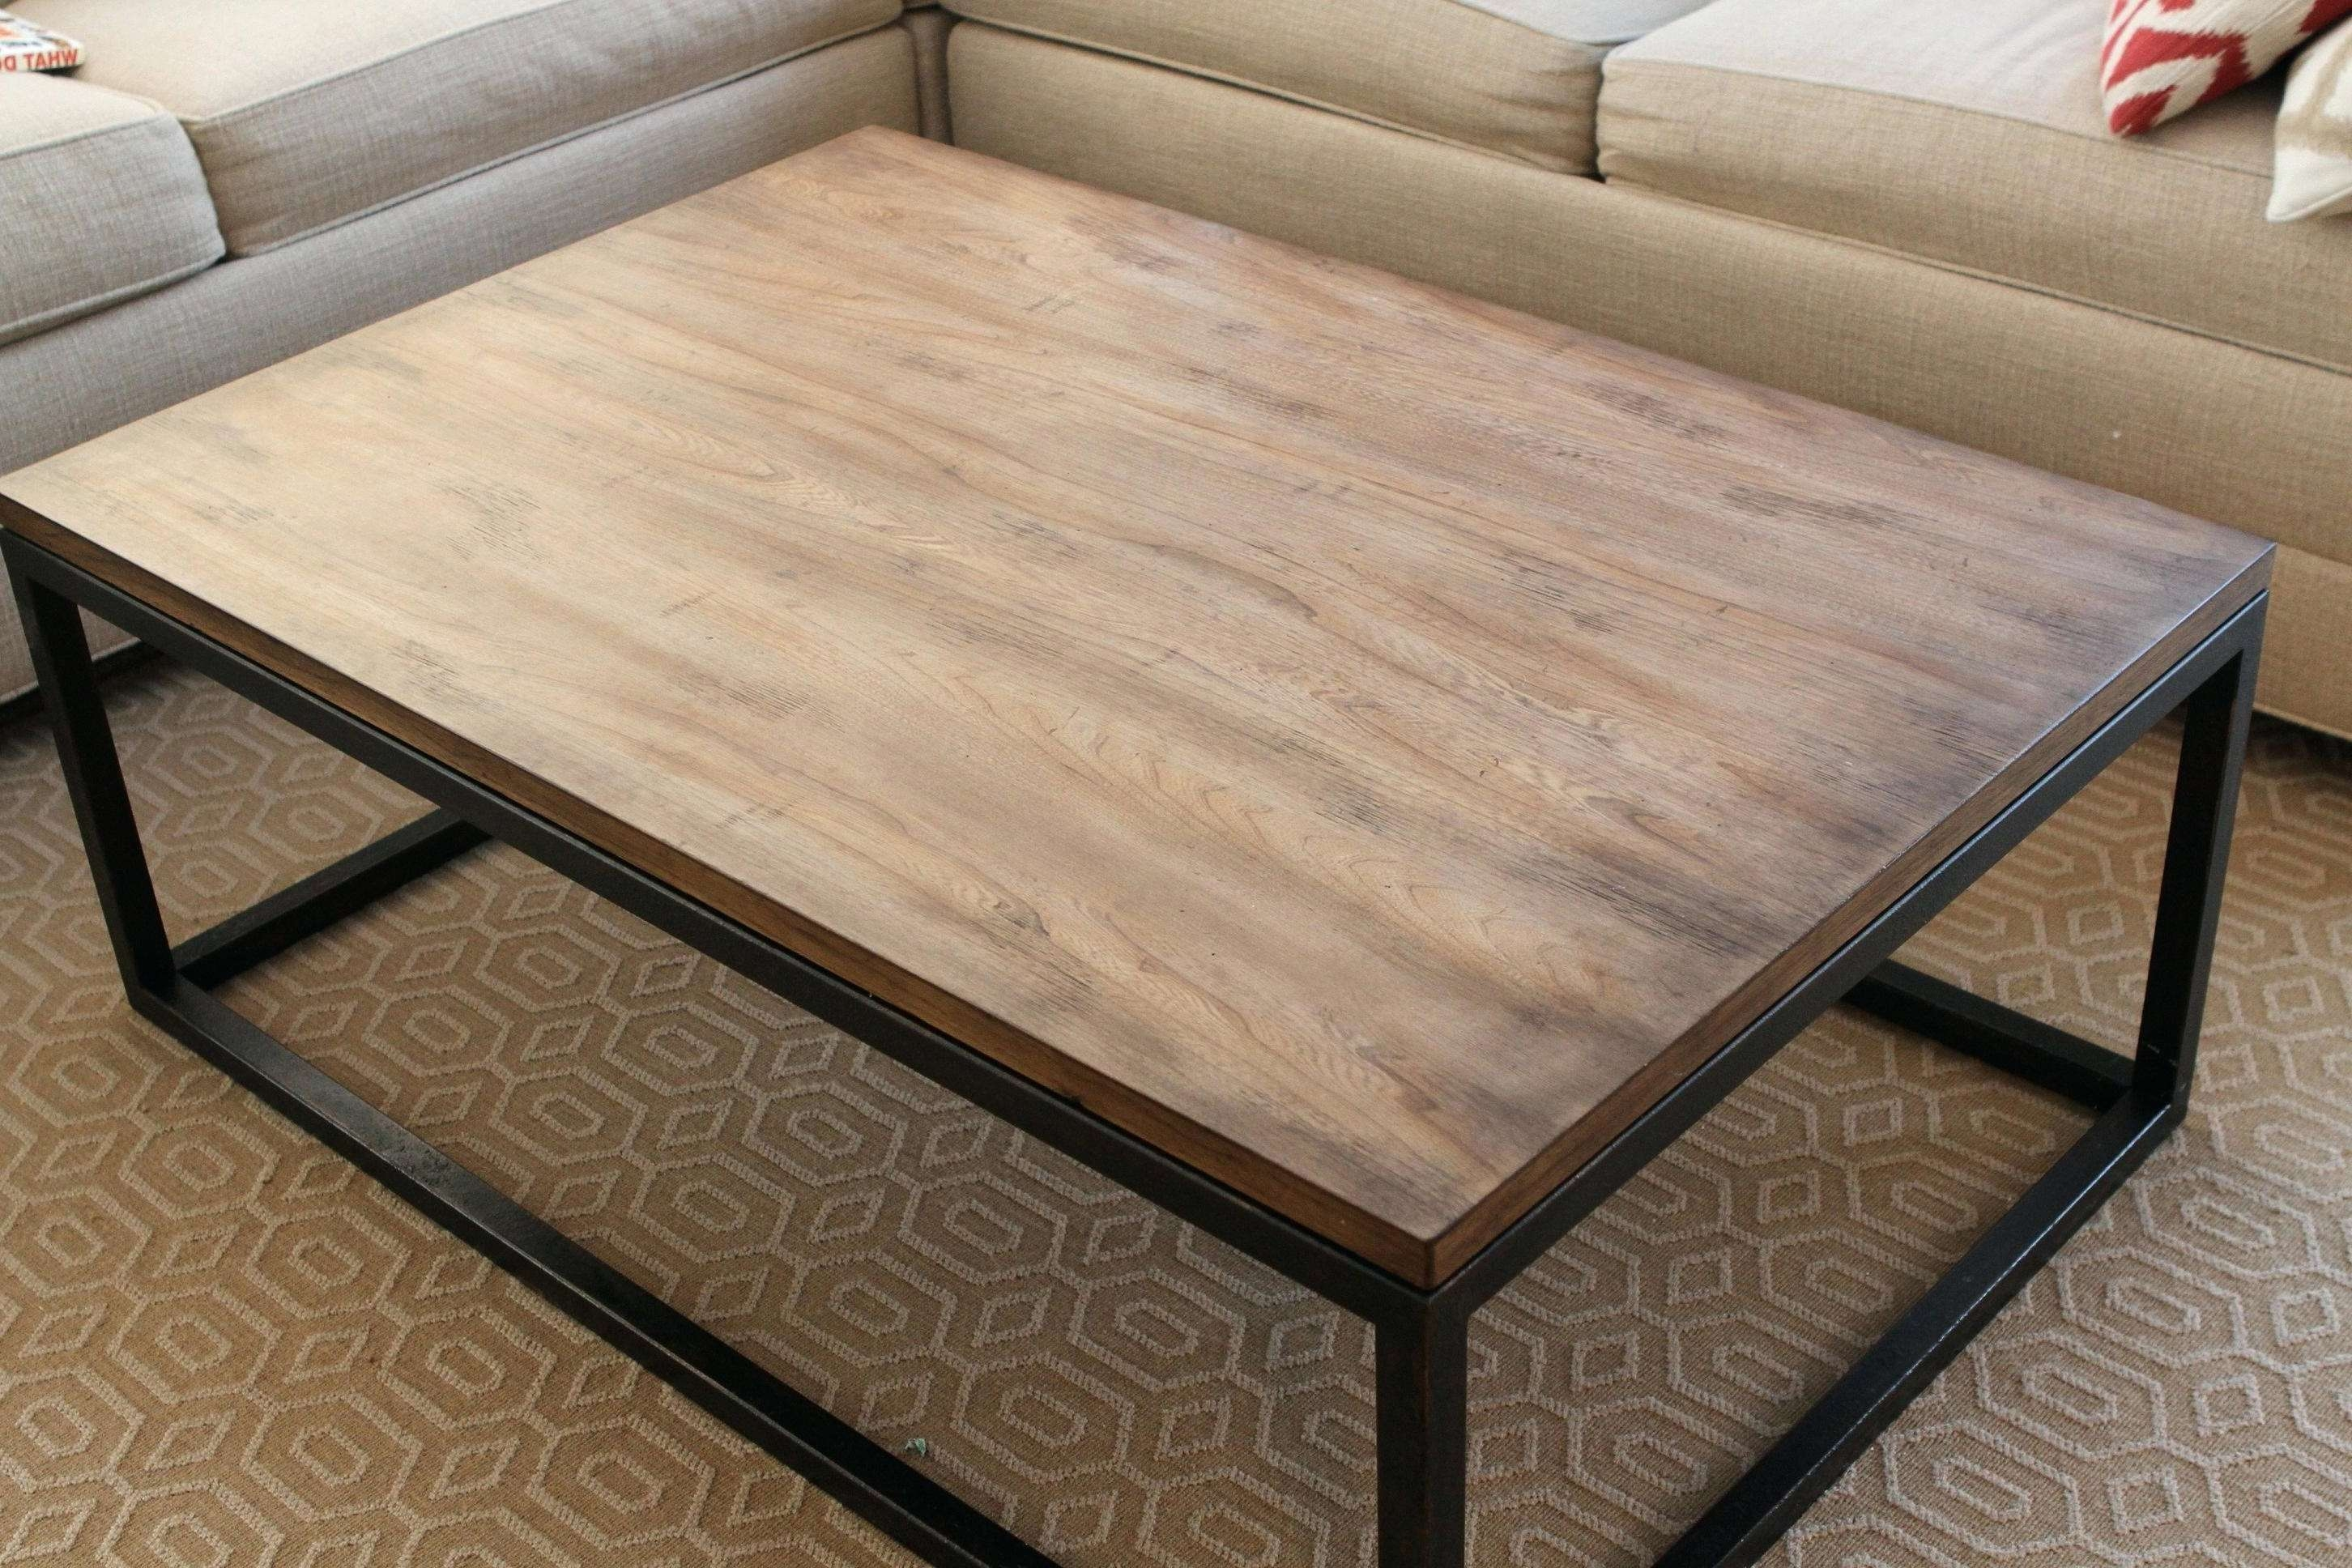 How To Baby Proof Coffee Table Design With Tables Corners Photo Inside Newest Baby Proof Coffee Tables Corners (Gallery 8 of 20)